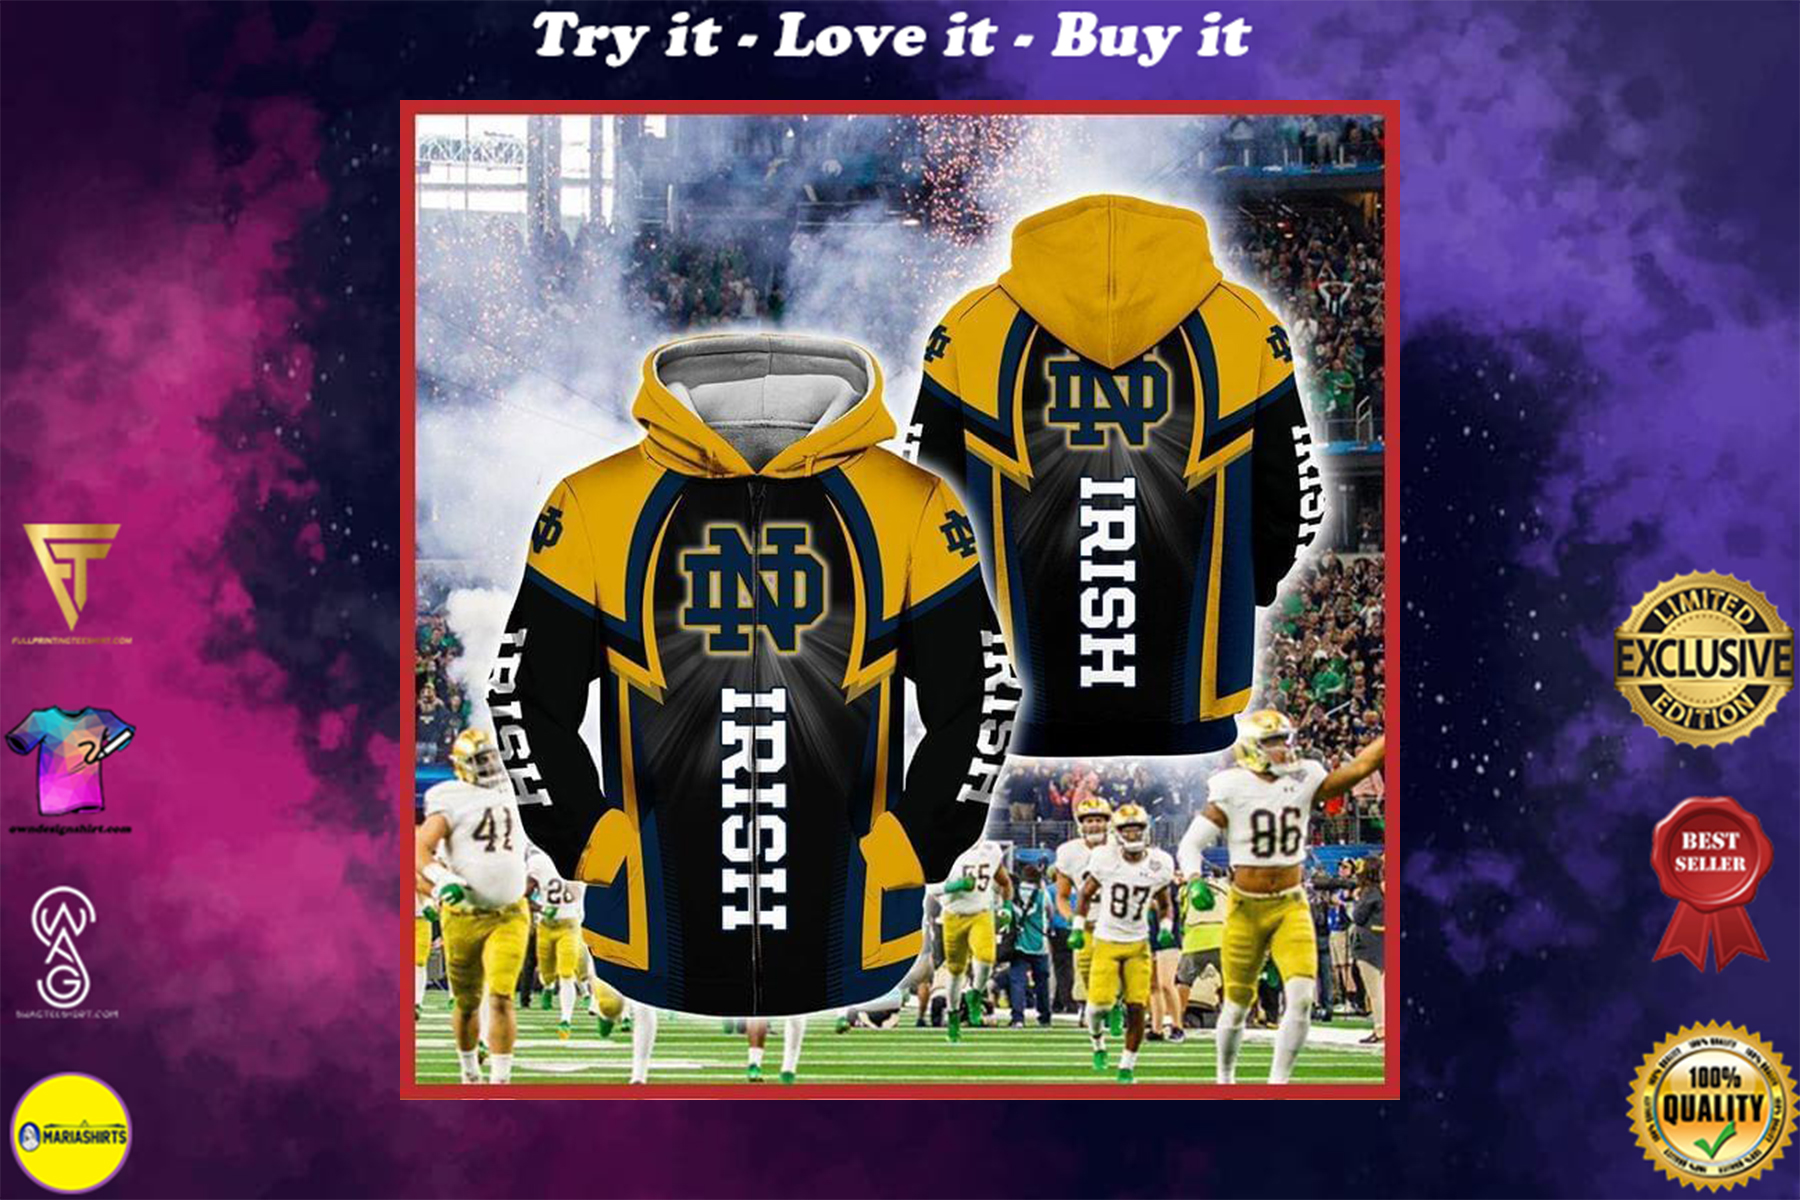 [special edition] notre dame fighting irish football full over printed shirt - maria